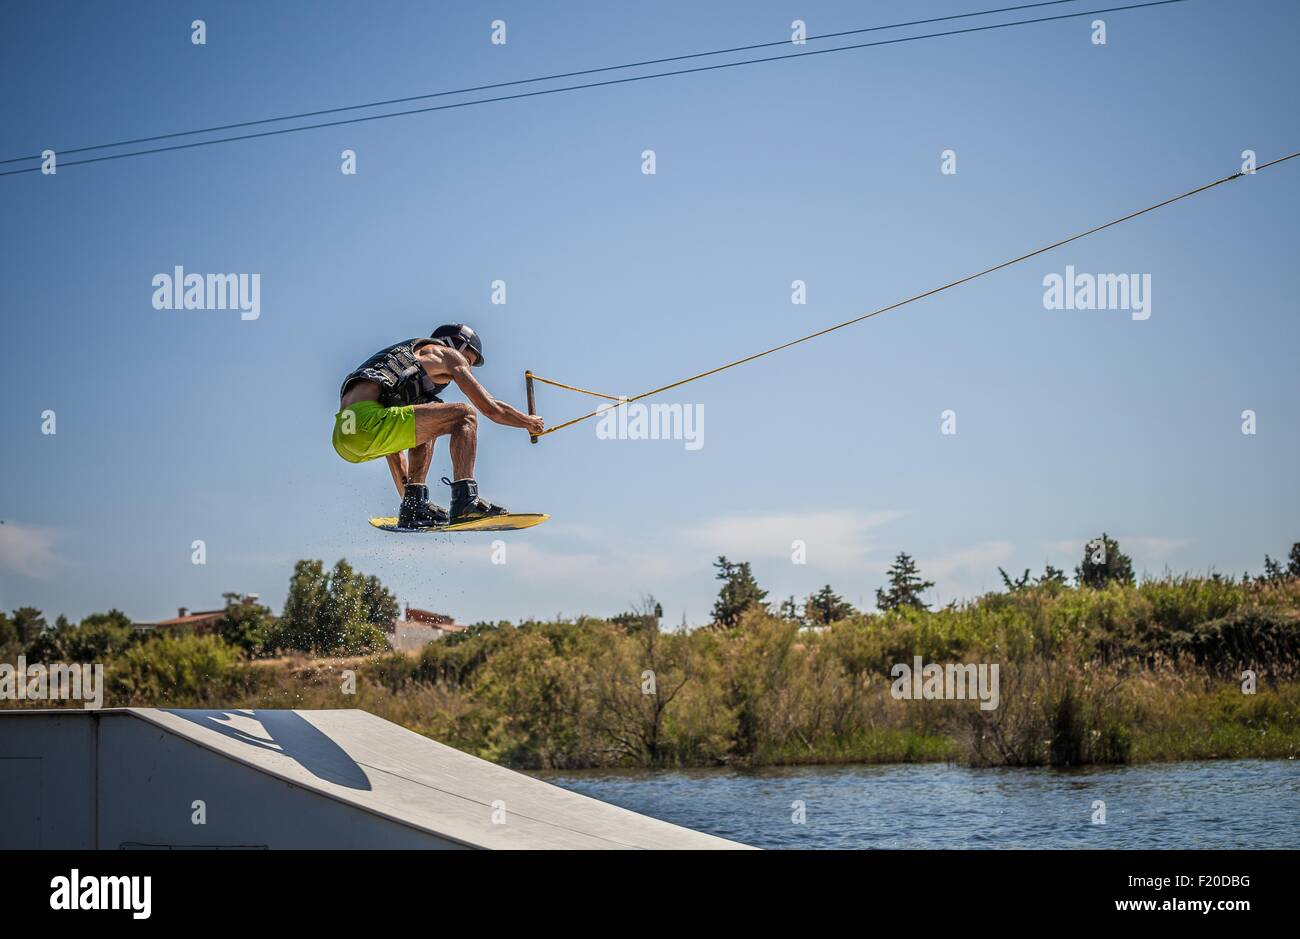 Mid adult male wakeboarder jumping ramp in sea, Cagliari, Sardinia, Italy - Stock Image